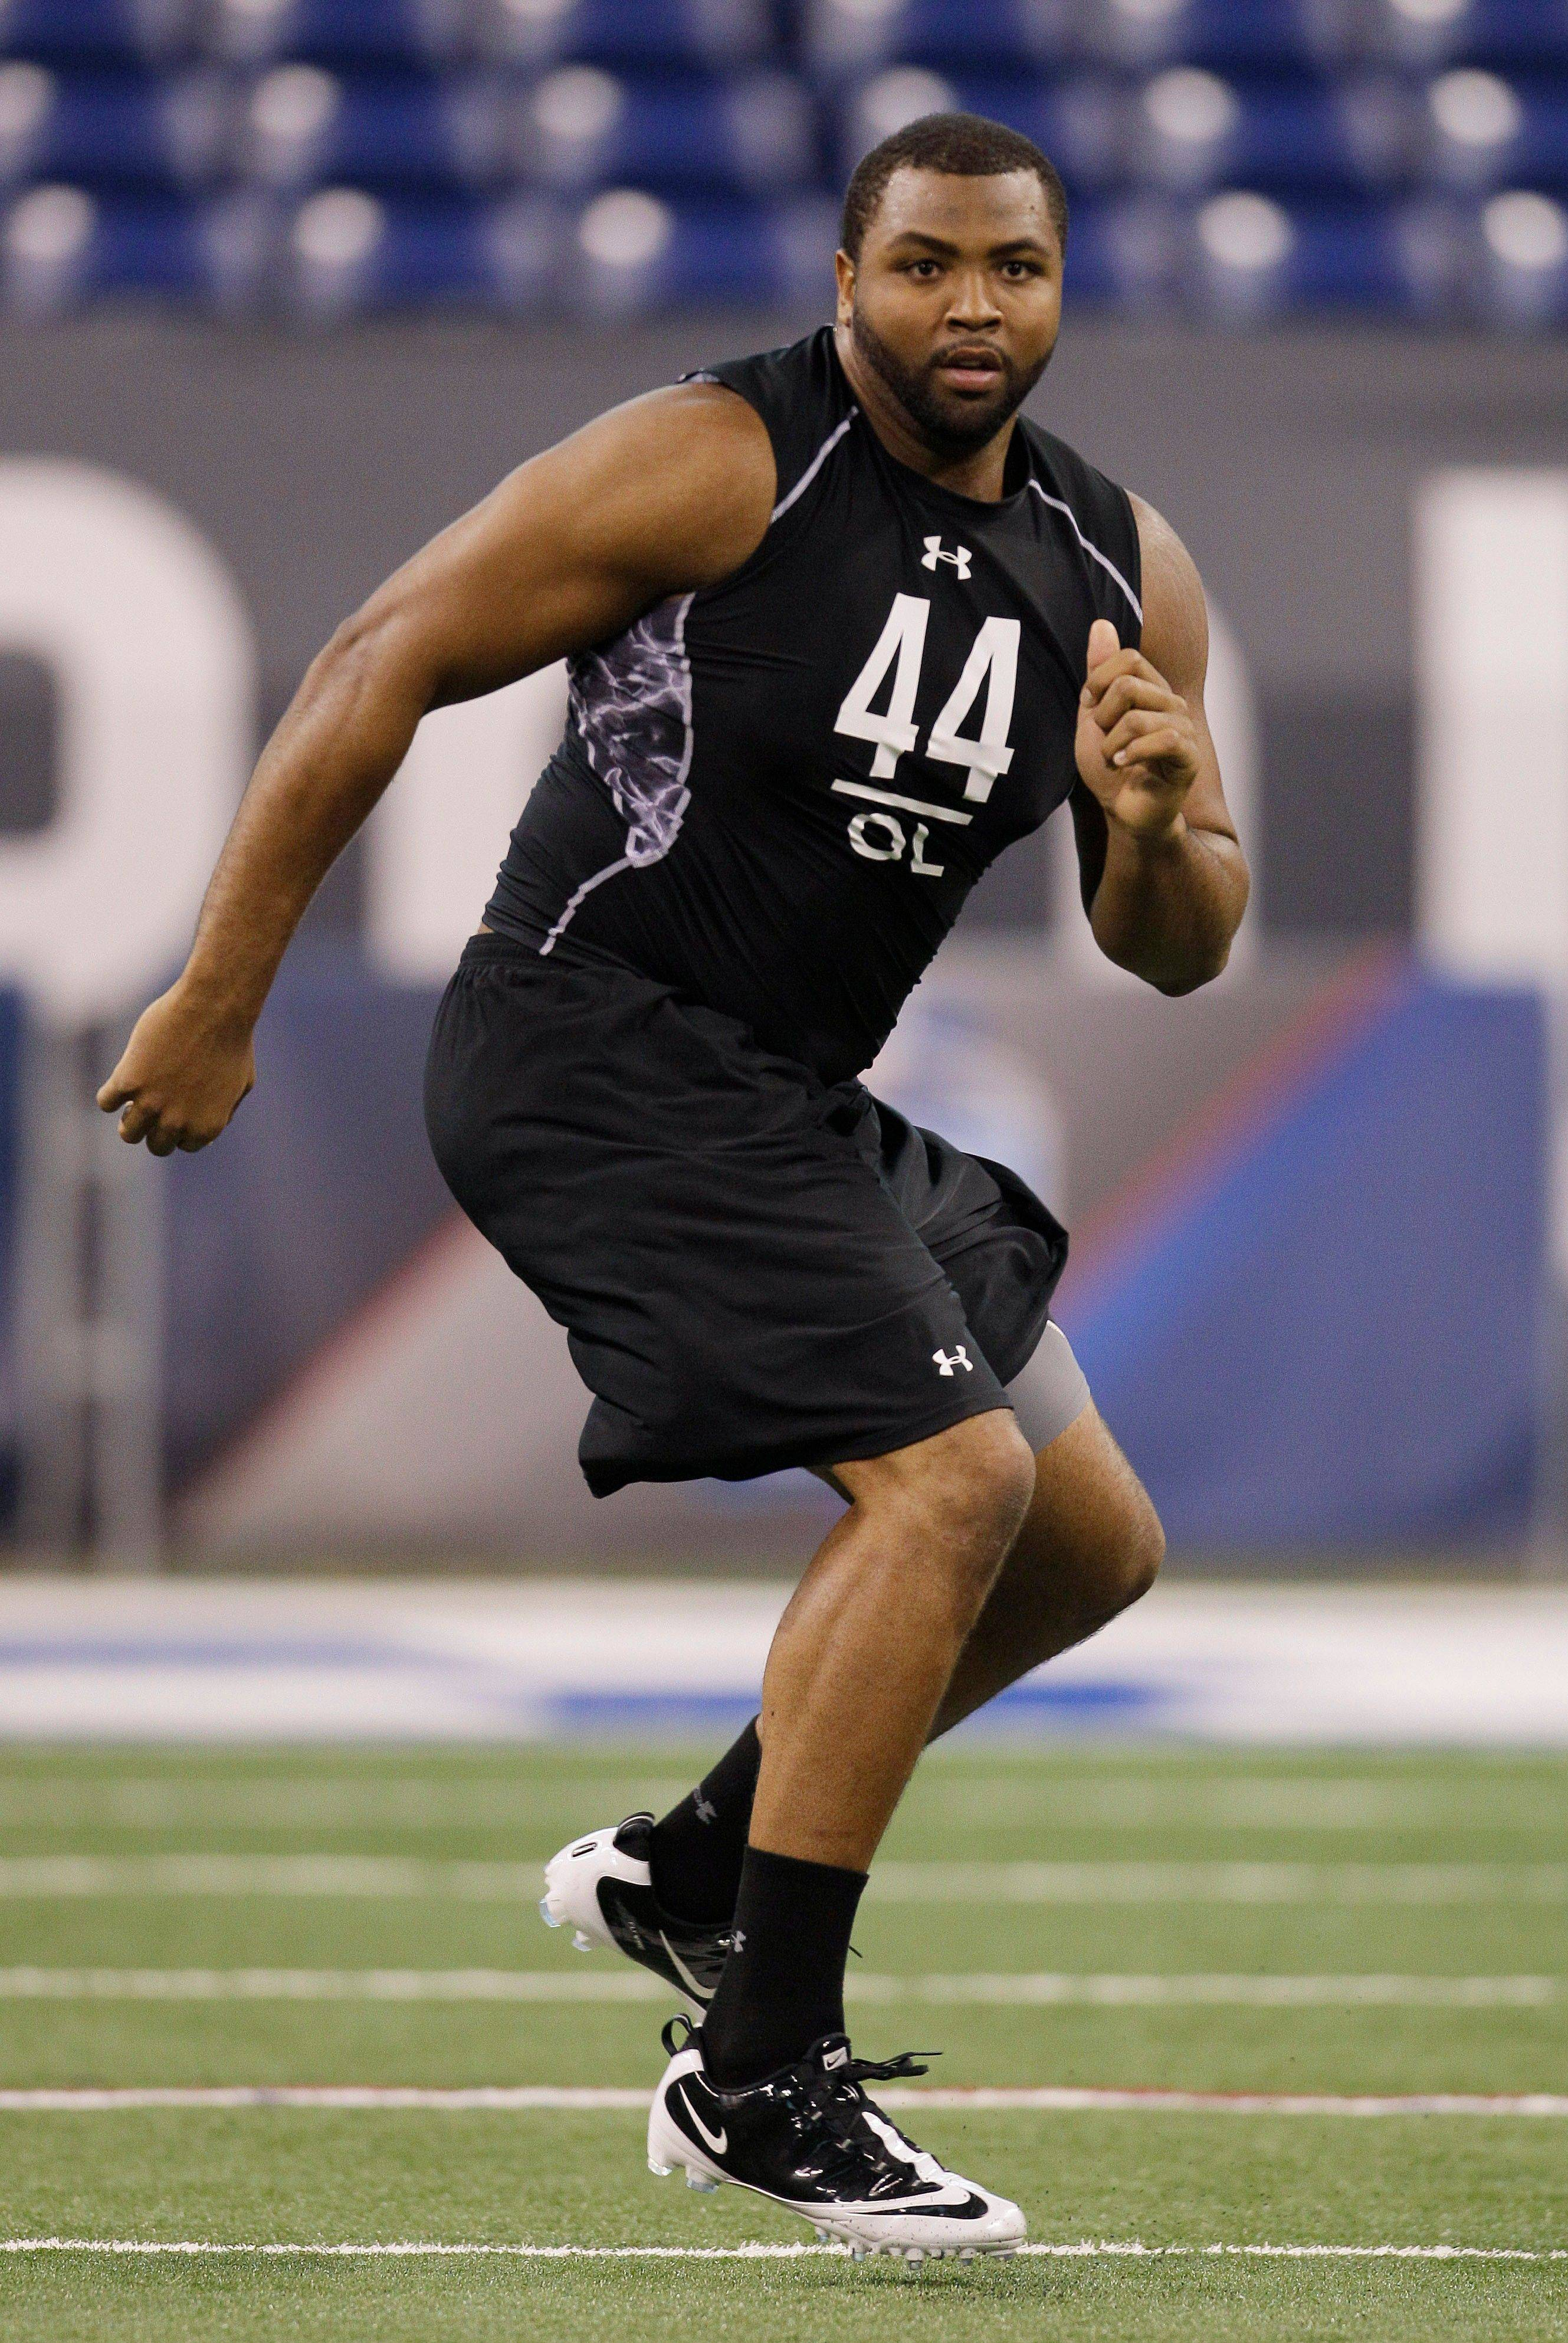 Mississippi State offensive lineman Derek Sherrod runs a drill during the NFL football scouting combine in Indianapolis, Saturday, Feb. 26, 2011.